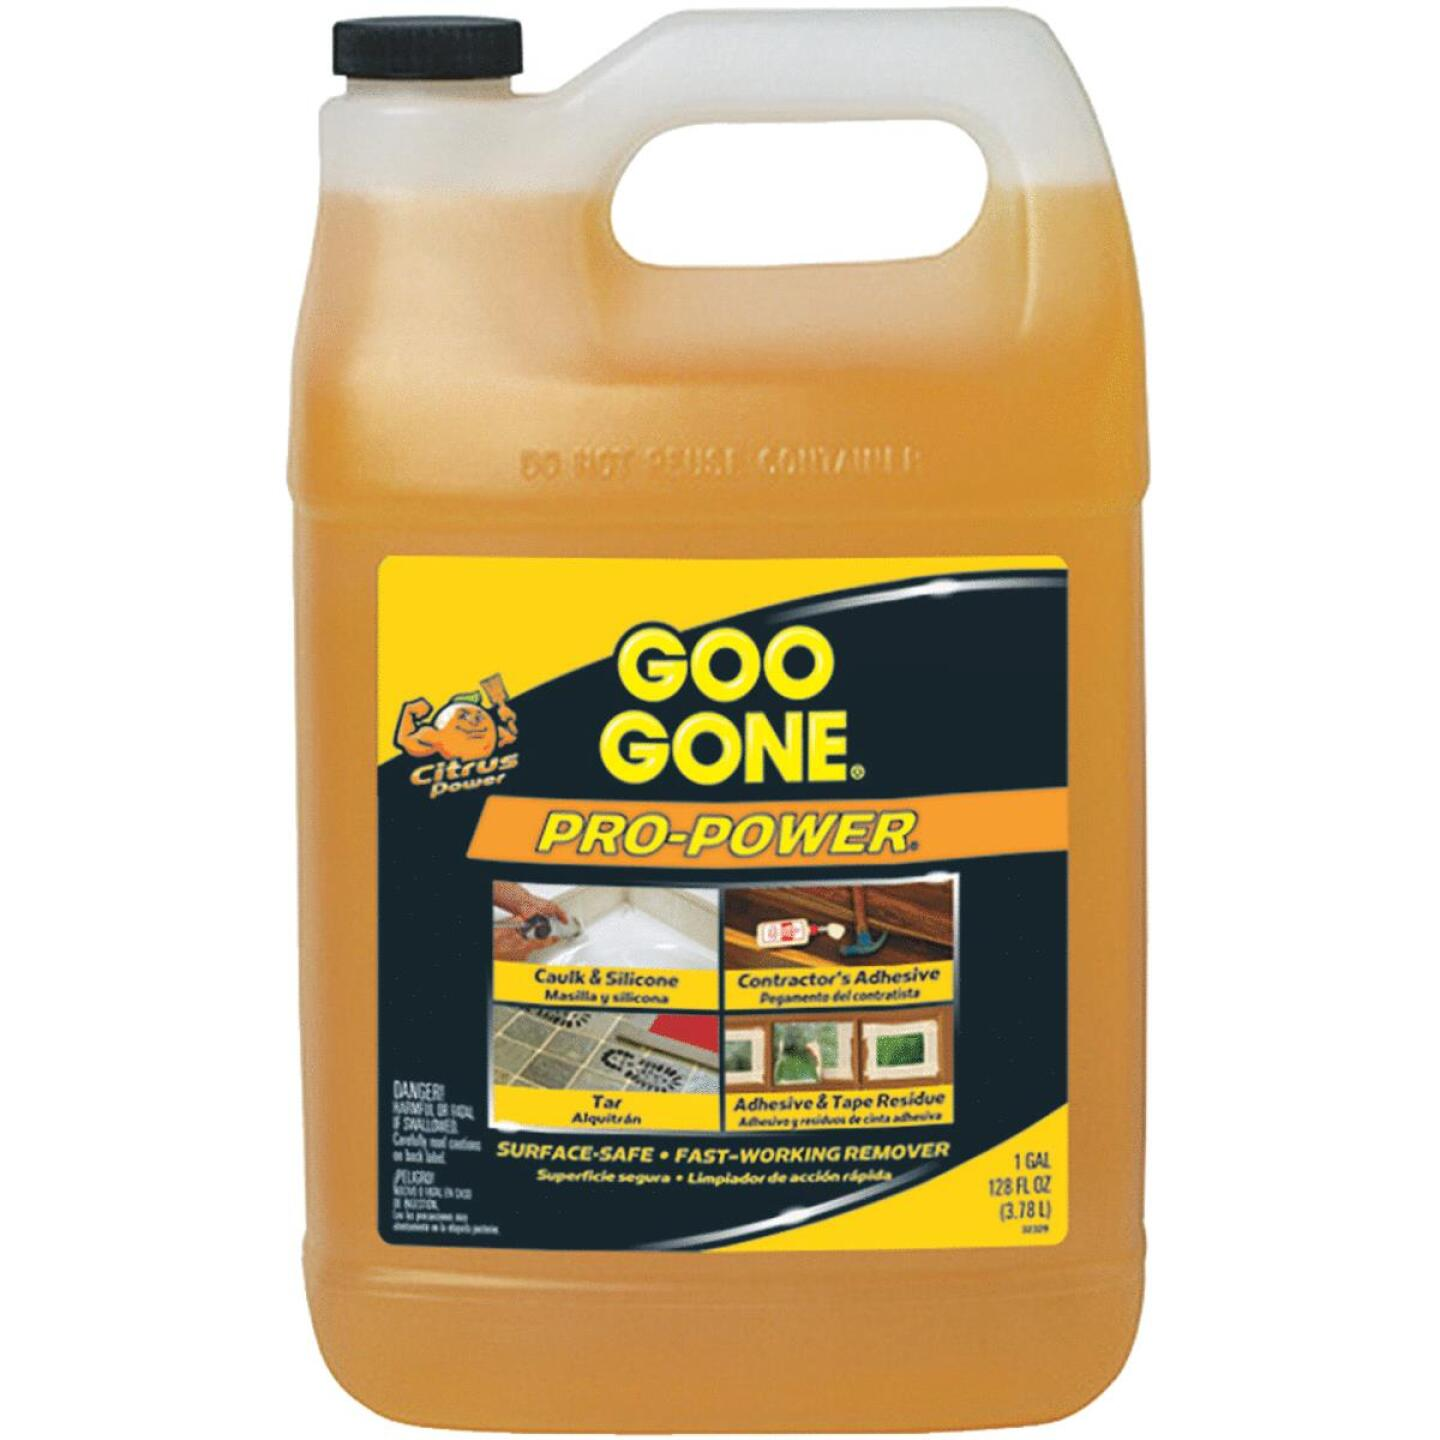 Goo Gone 1 Gal. Pro-Power Adhesive Remover Image 62